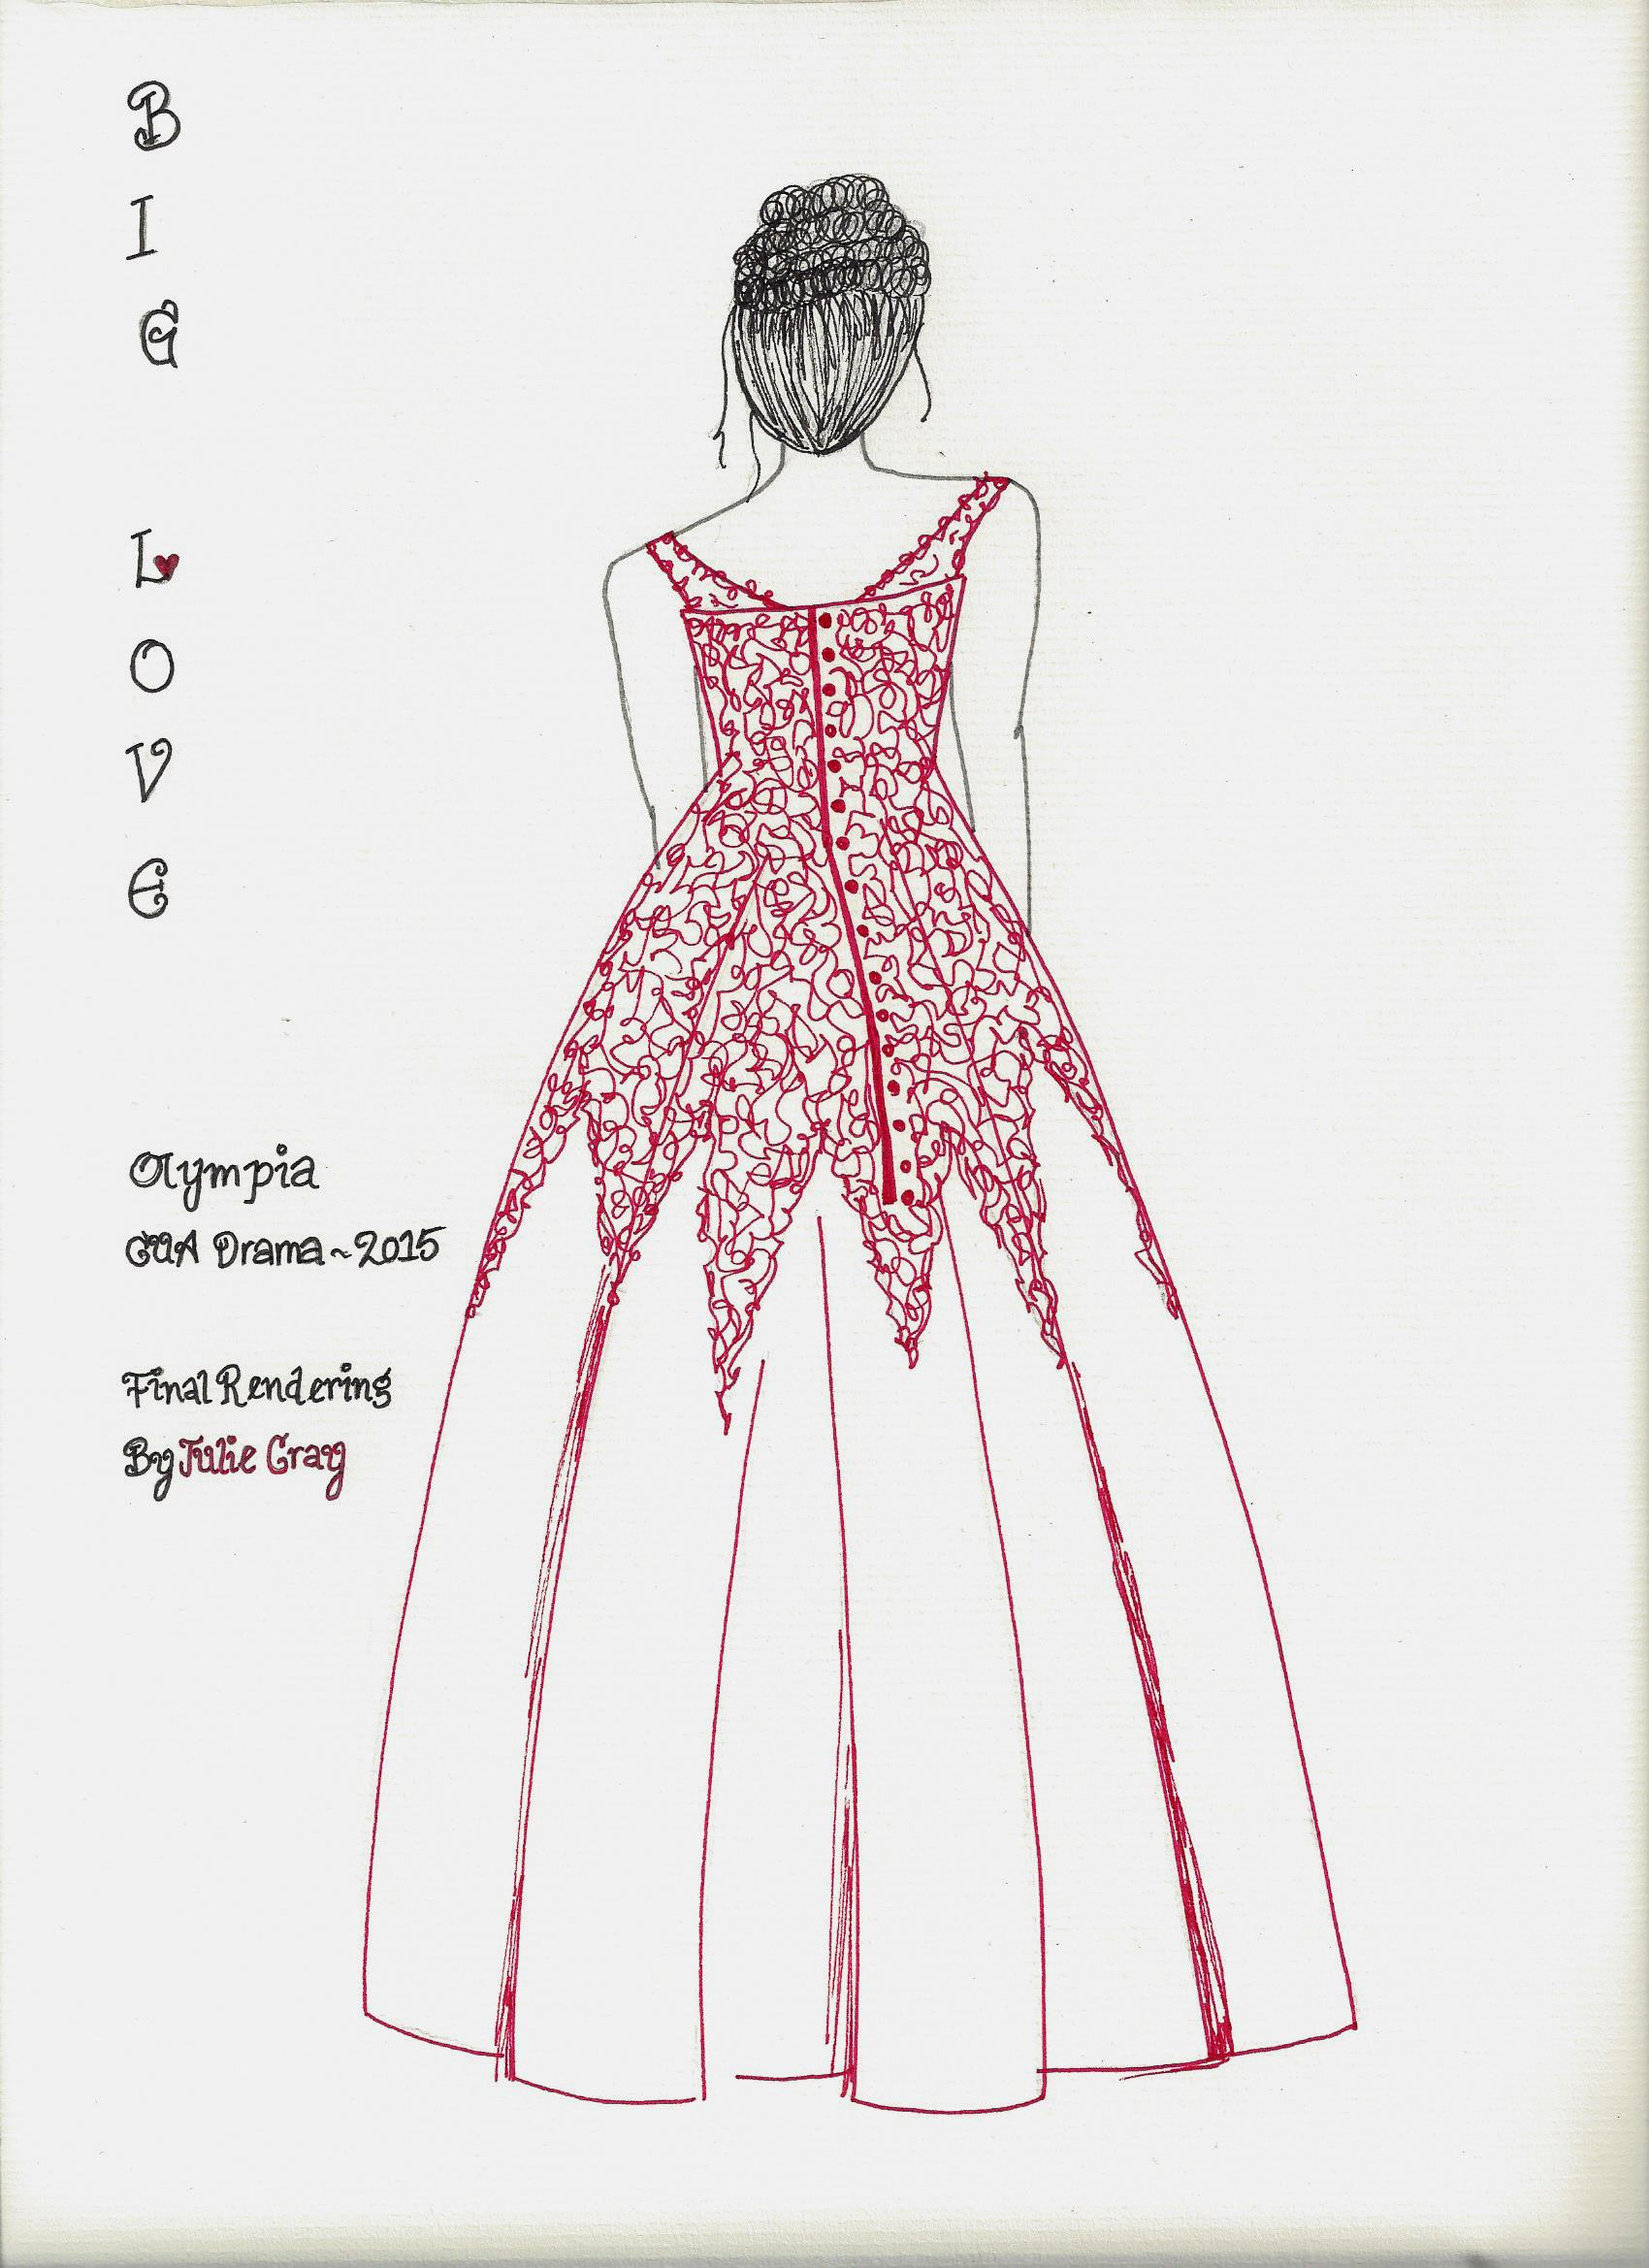 Olympia Final Costume Rendering - Back